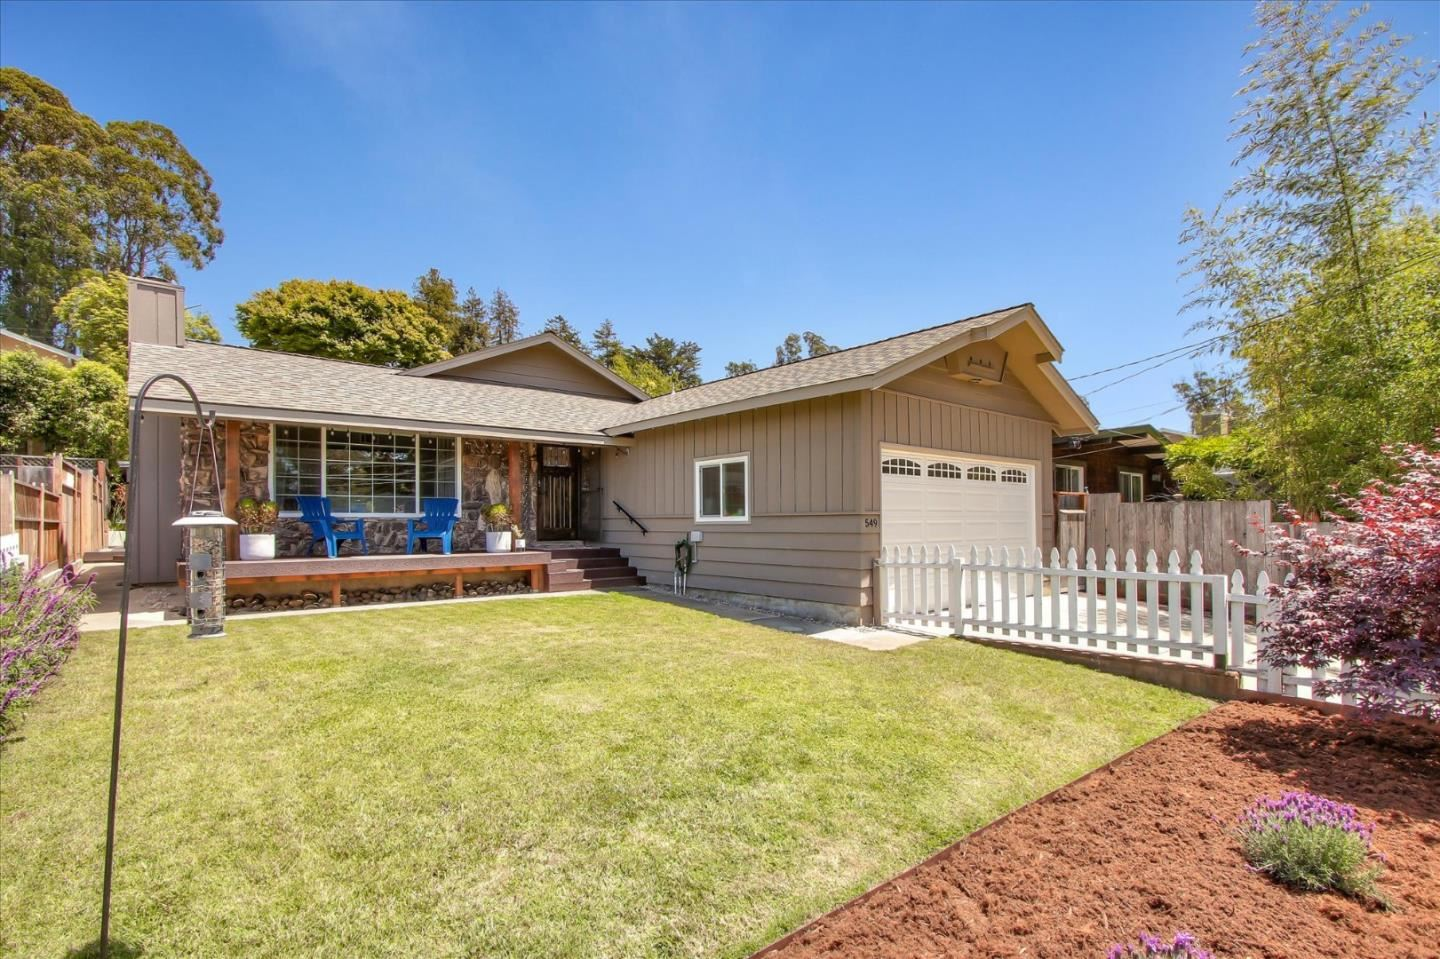 Photo for 549 Clubhouse DR, APTOS, CA 95003 (MLS # ML81793757)